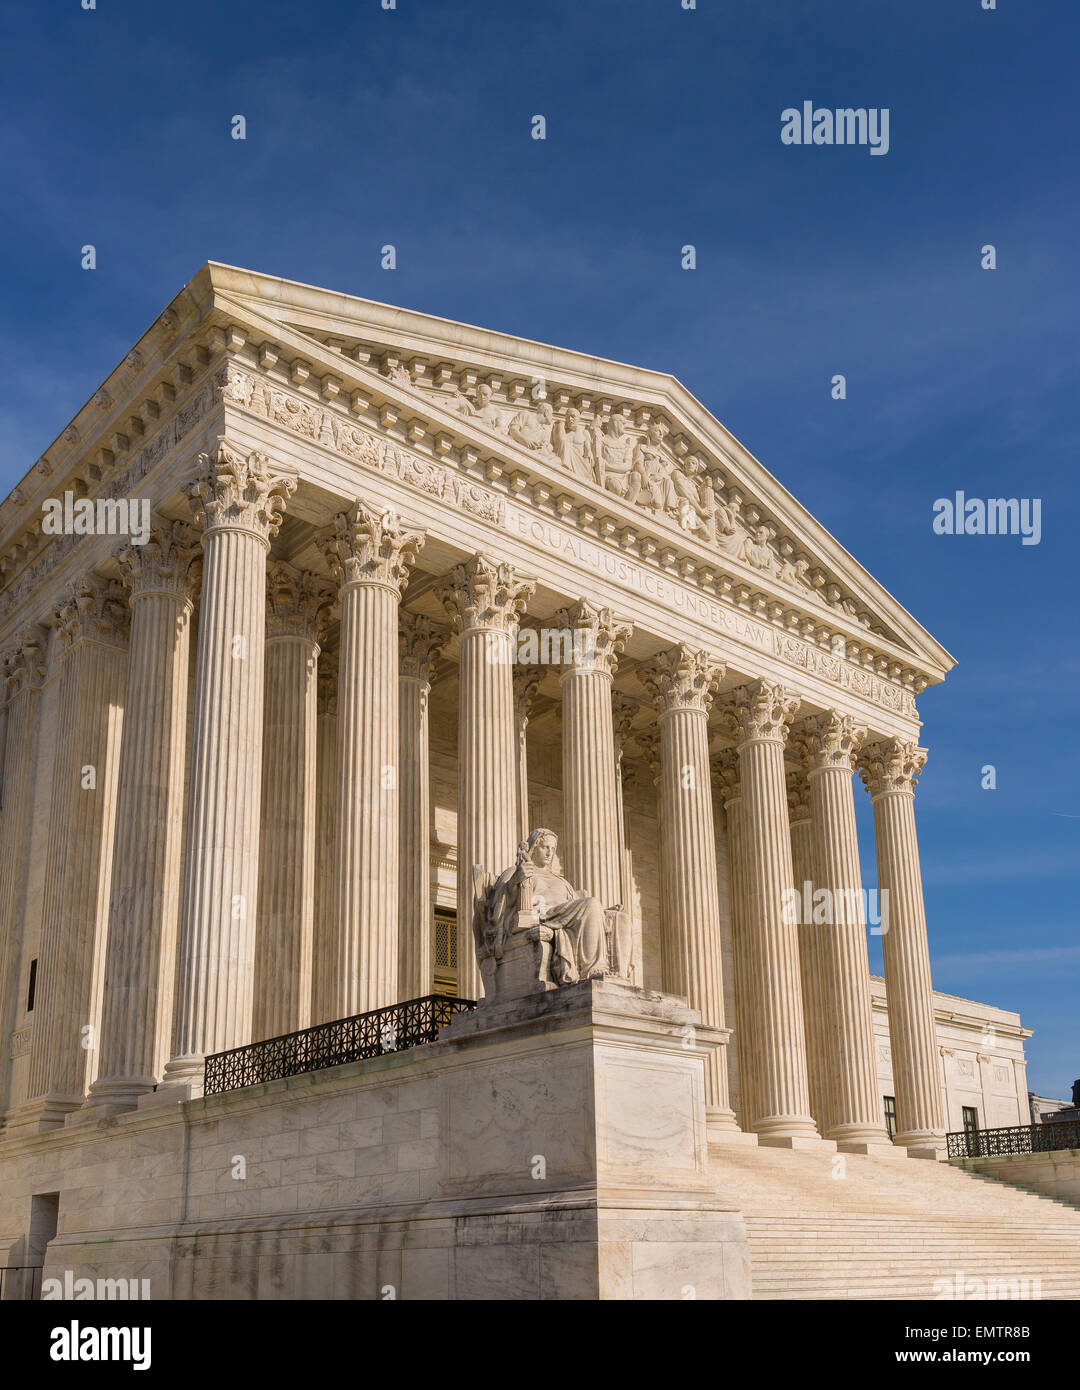 WASHINGTON, DC, USA - United States Supreme Court building exterior. 'Contemplation of Justice' statue by - Stock Image